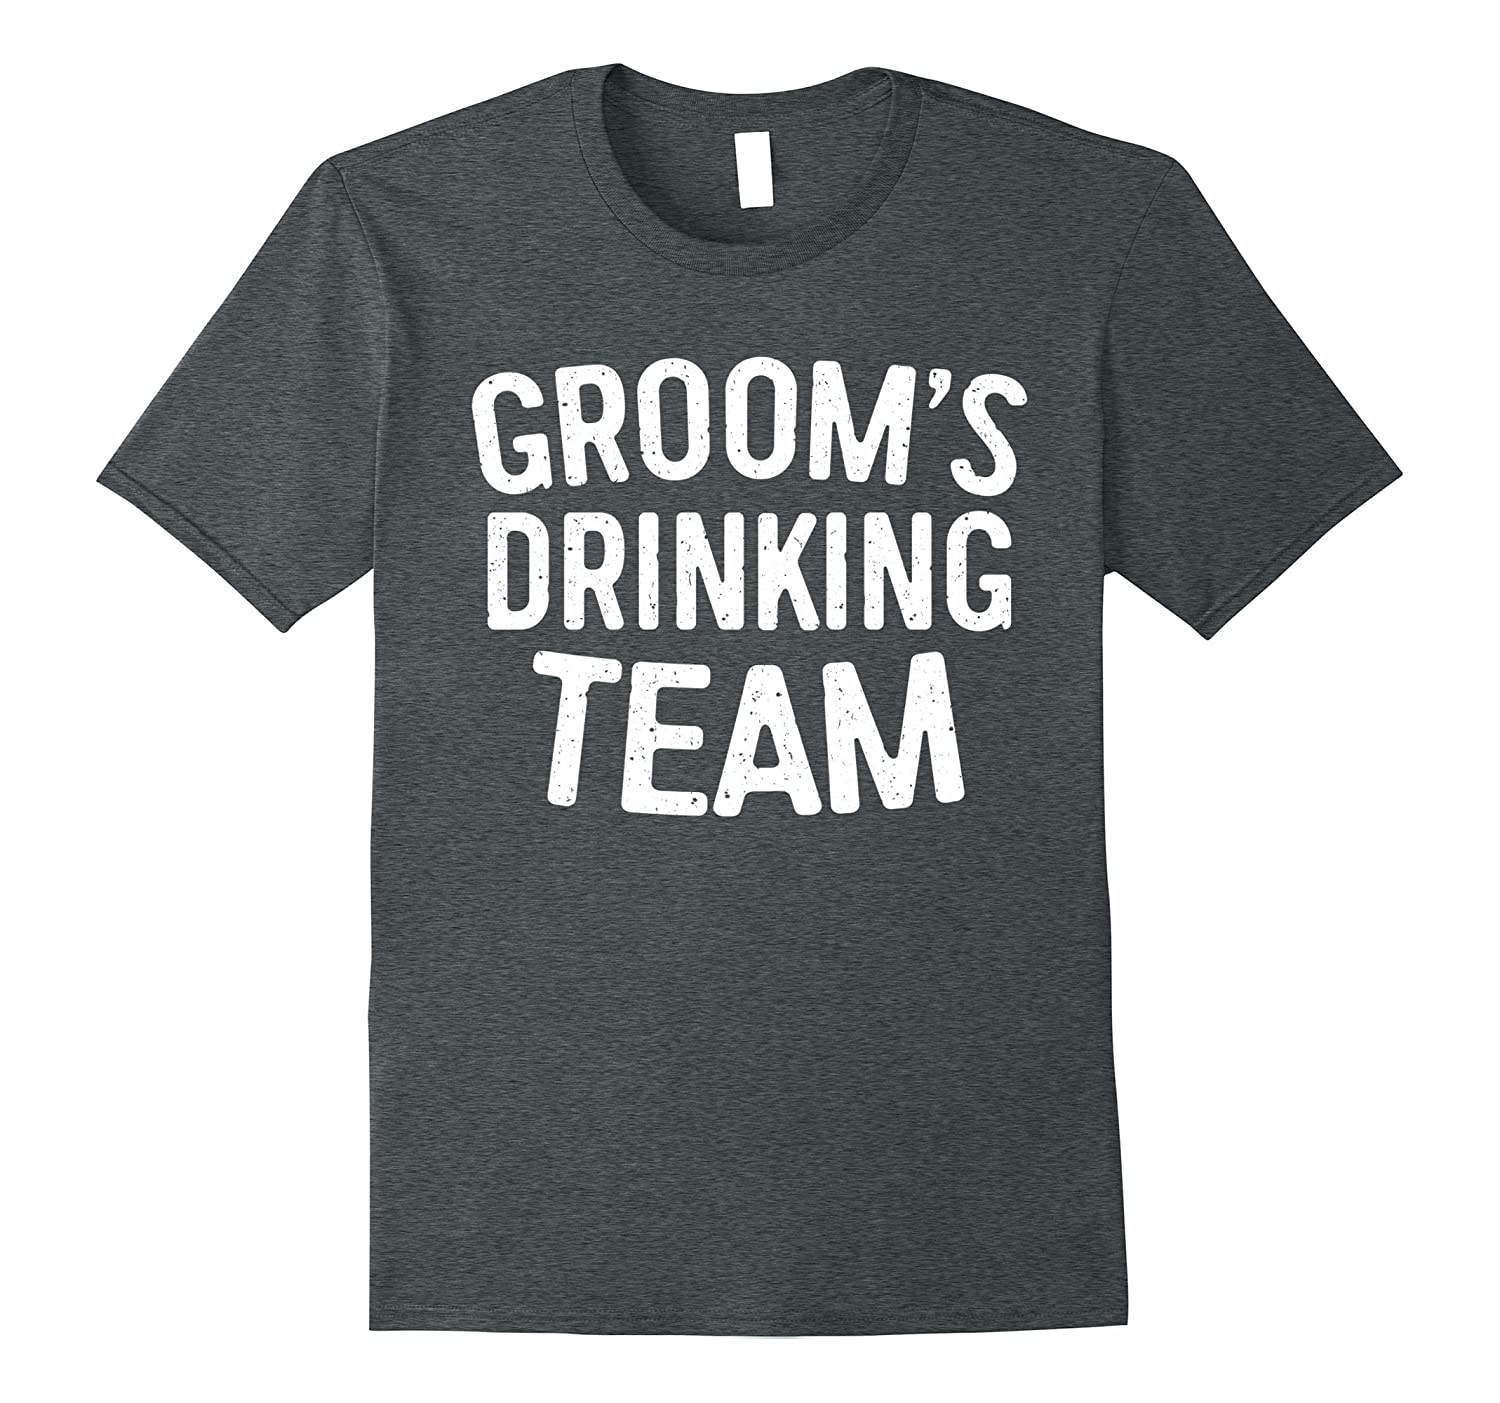 09ceb846 Mens Groom's Drinking Team T-Shirt Funny Bachelor Party Gift-RT ...